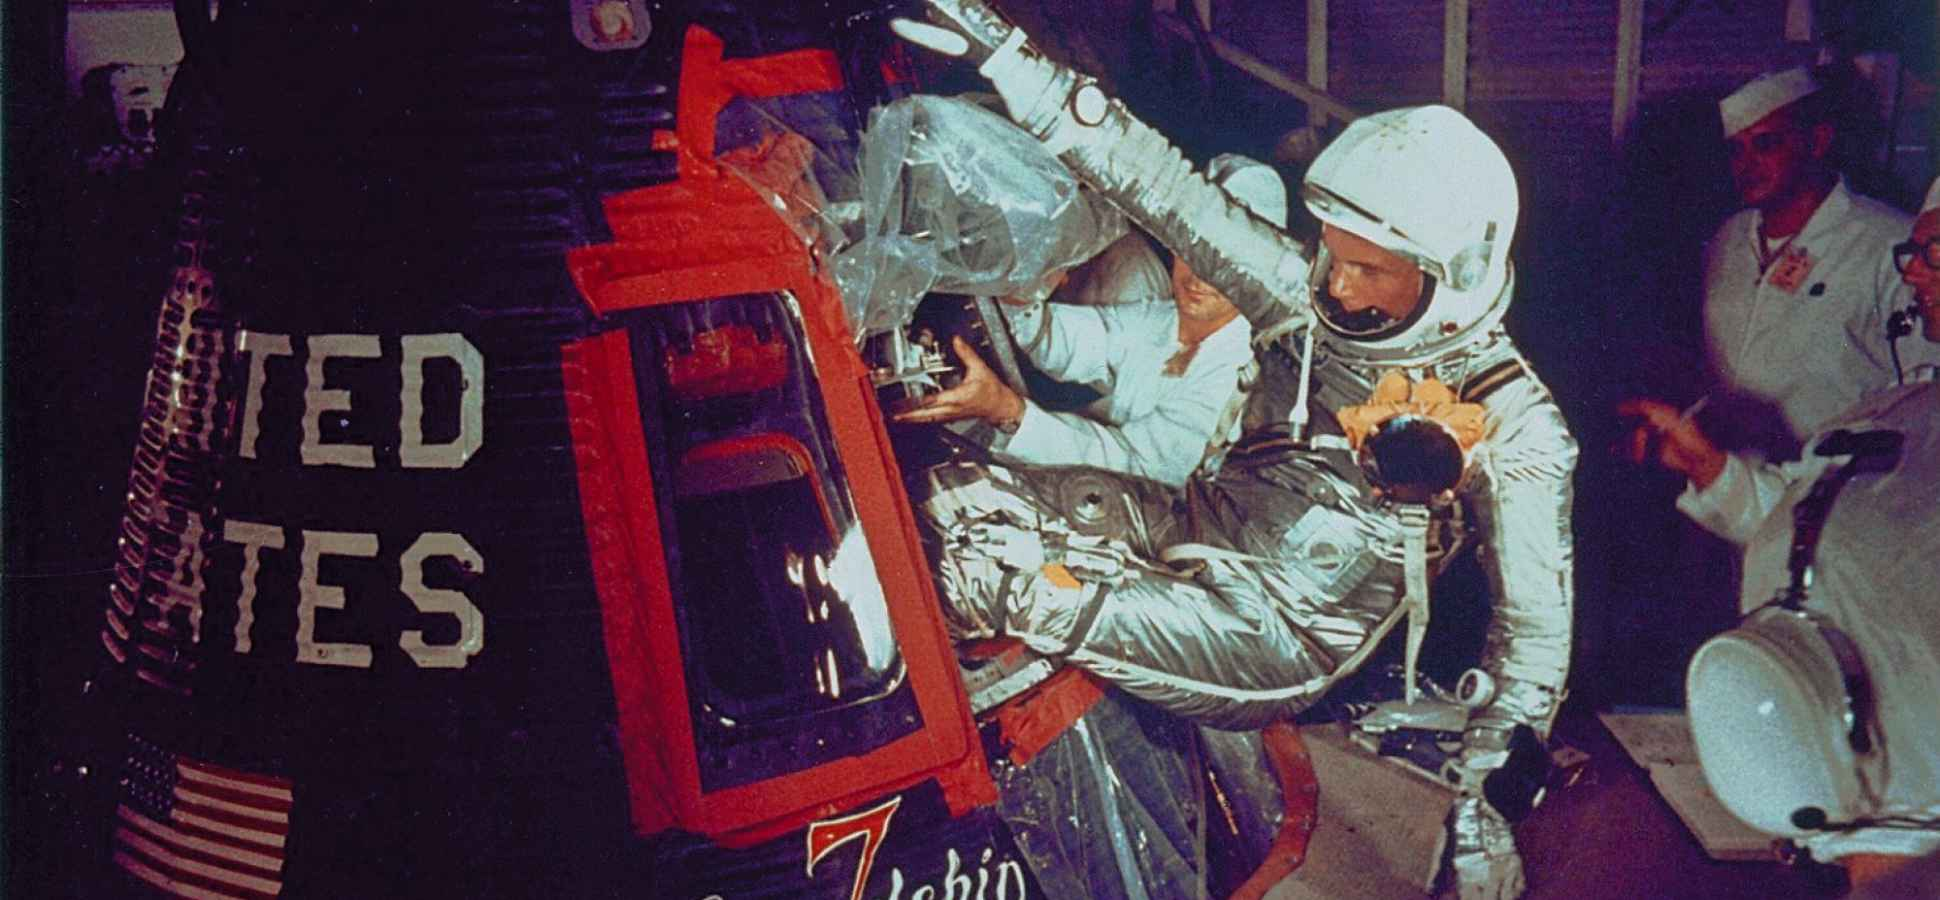 8 Ways to Know If You've Got the Right Stuff: A Memorial Tribute to John Glenn